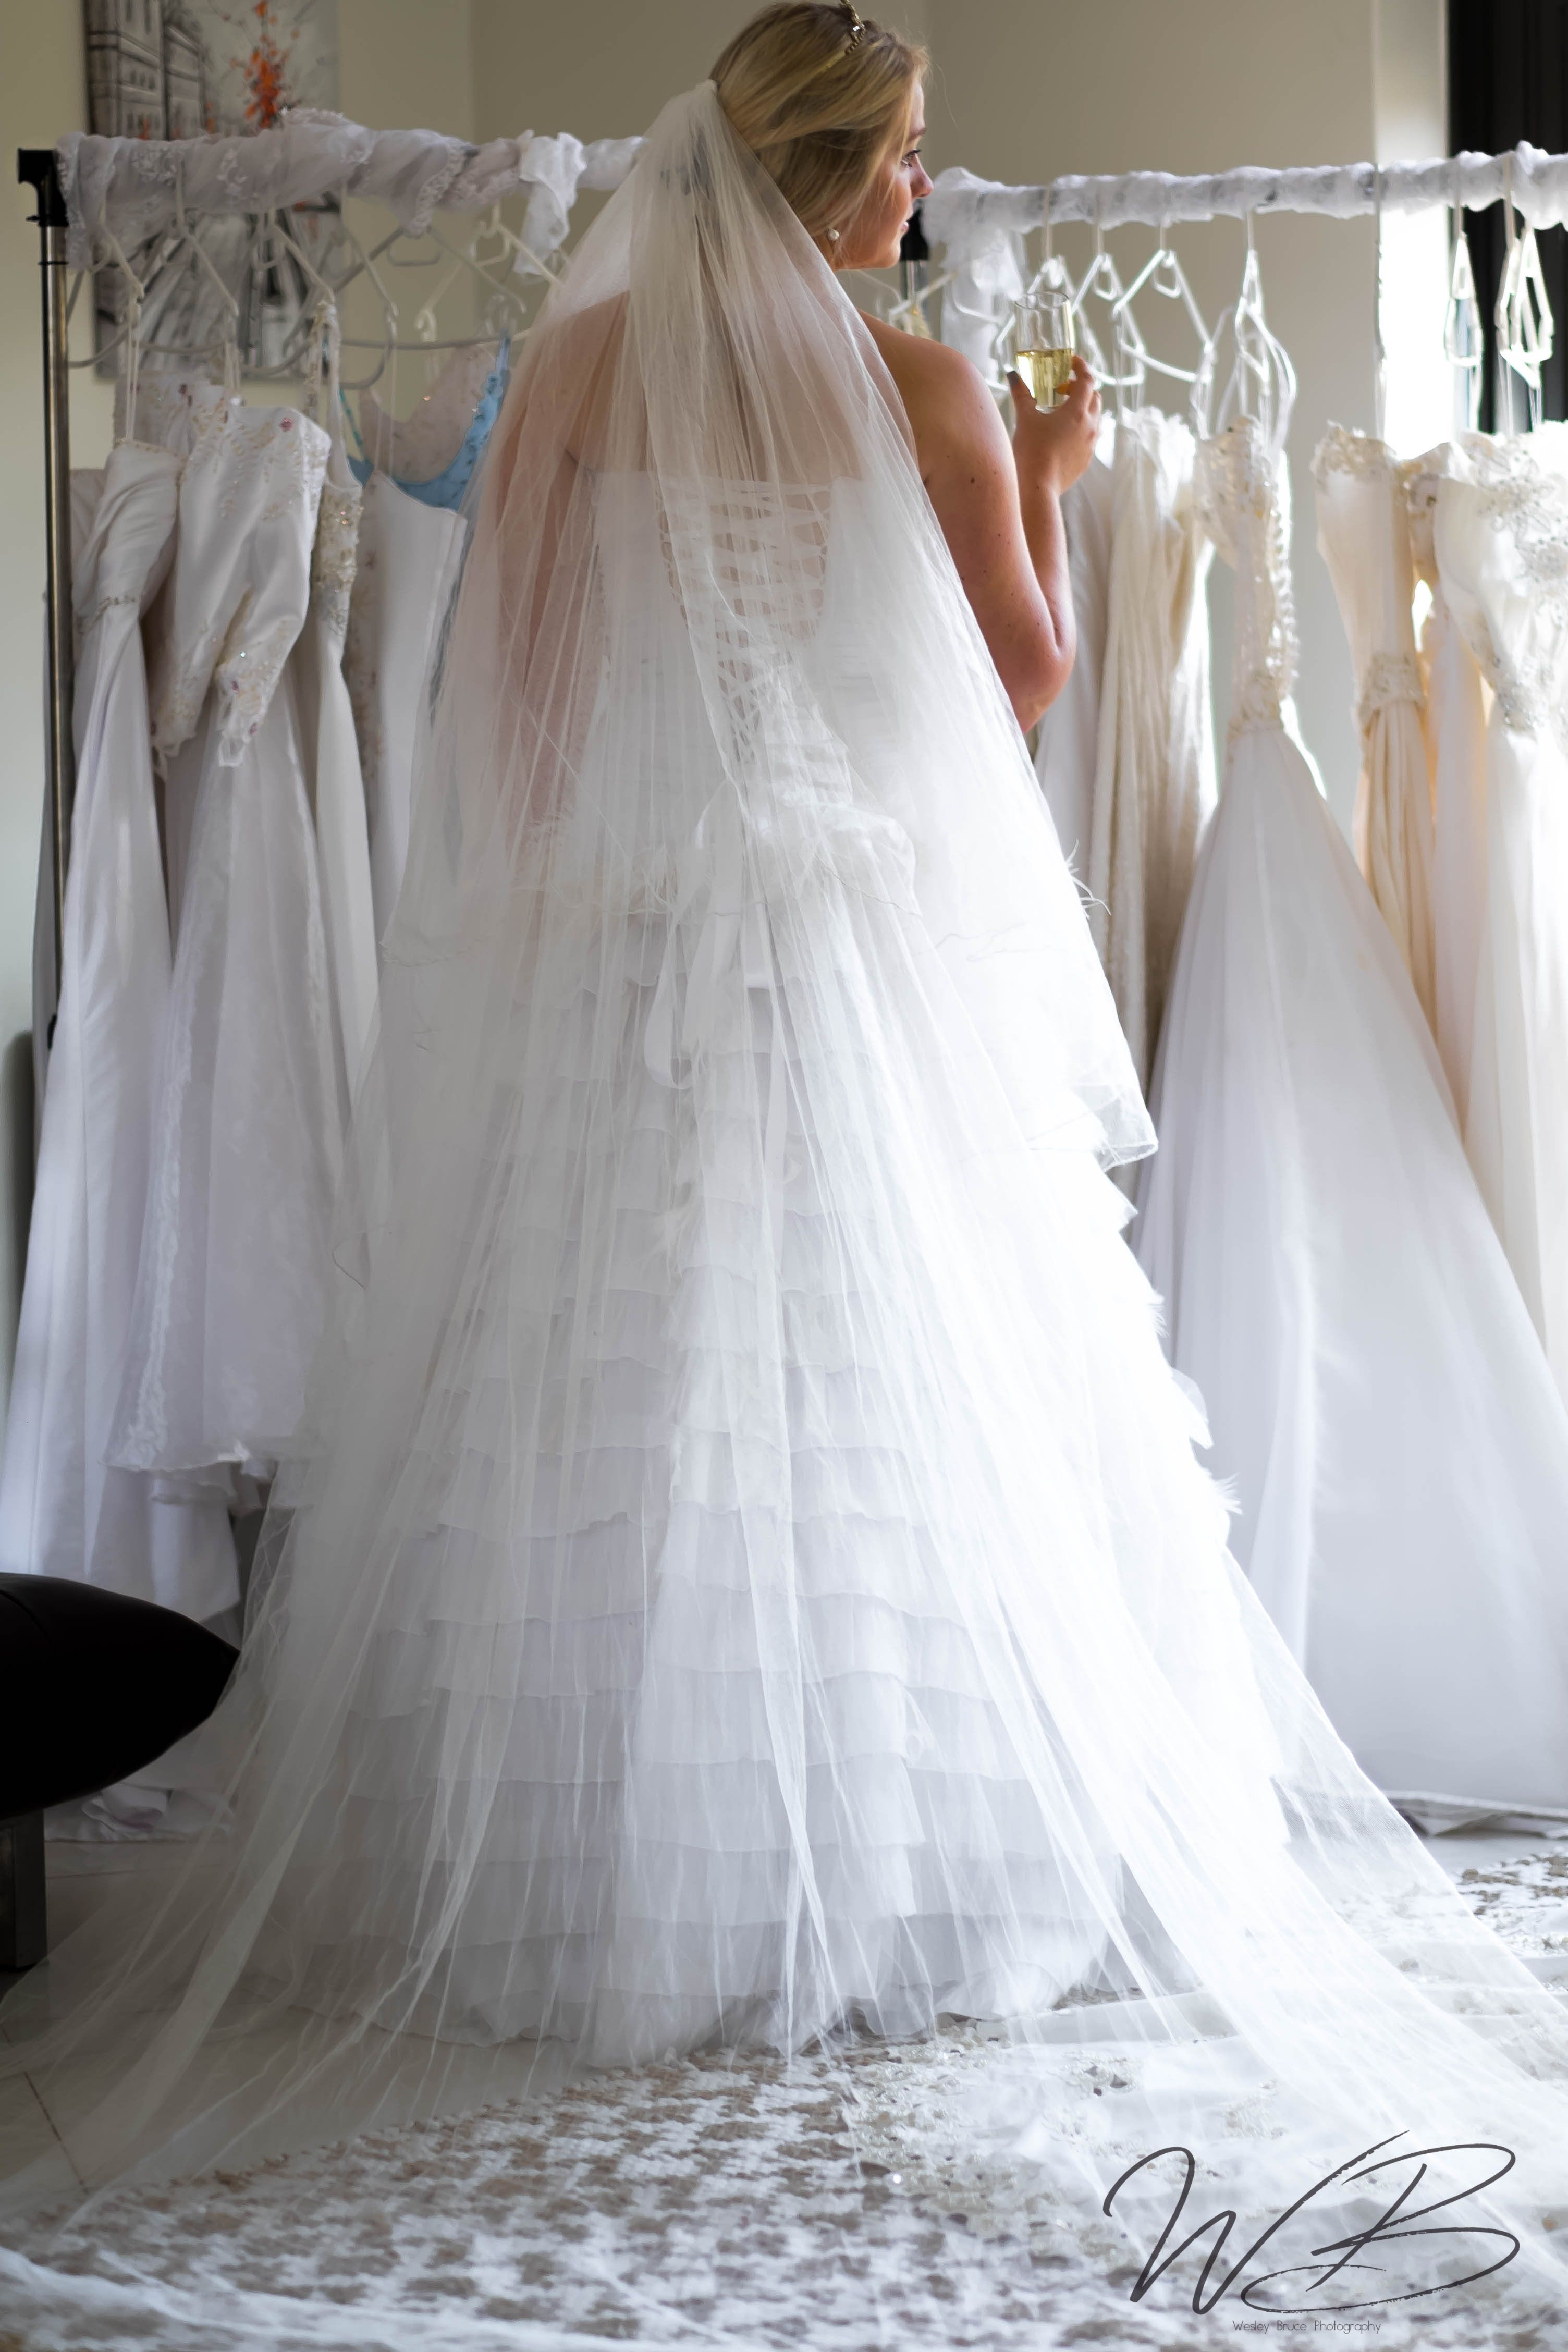 Catherine anns designs based in port elizabeth south africa catherine anns designs based in port elizabeth south africa offers a variety of designer gowns for hire or purchase wedding dresses bridesmaids ombrellifo Image collections